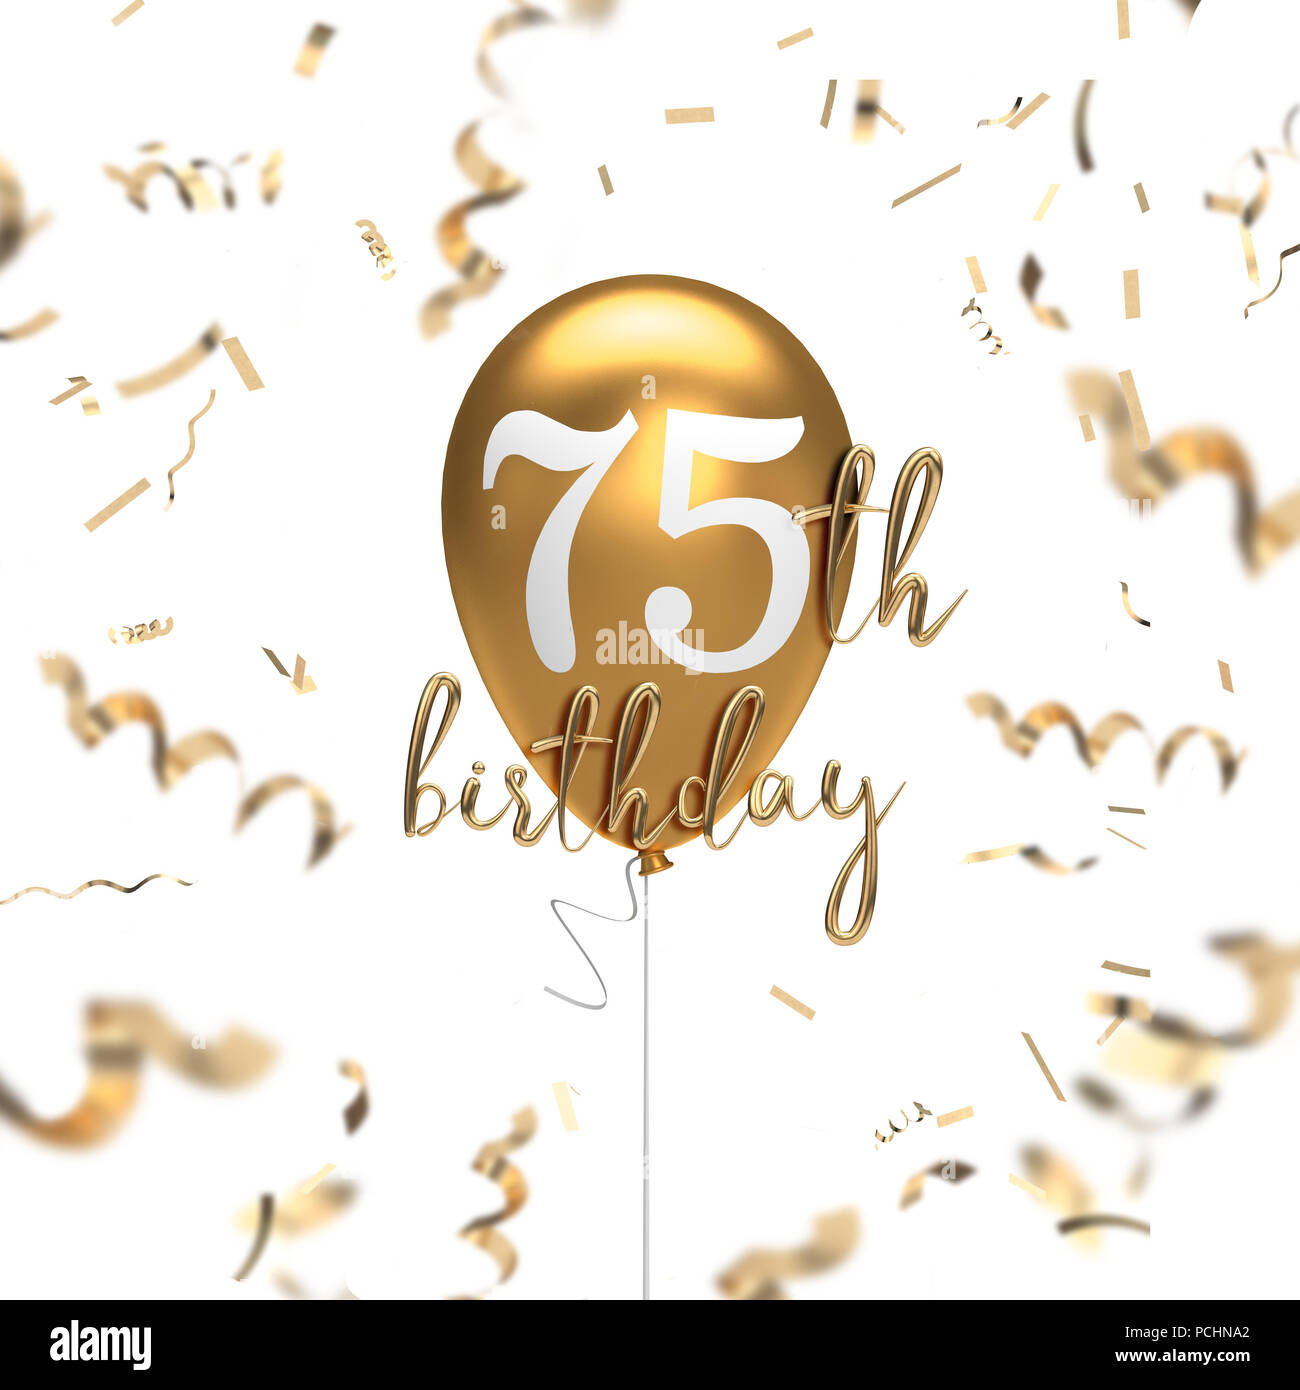 Happy 75th Birthday Gold Balloon Greeting Background 3D Rendering